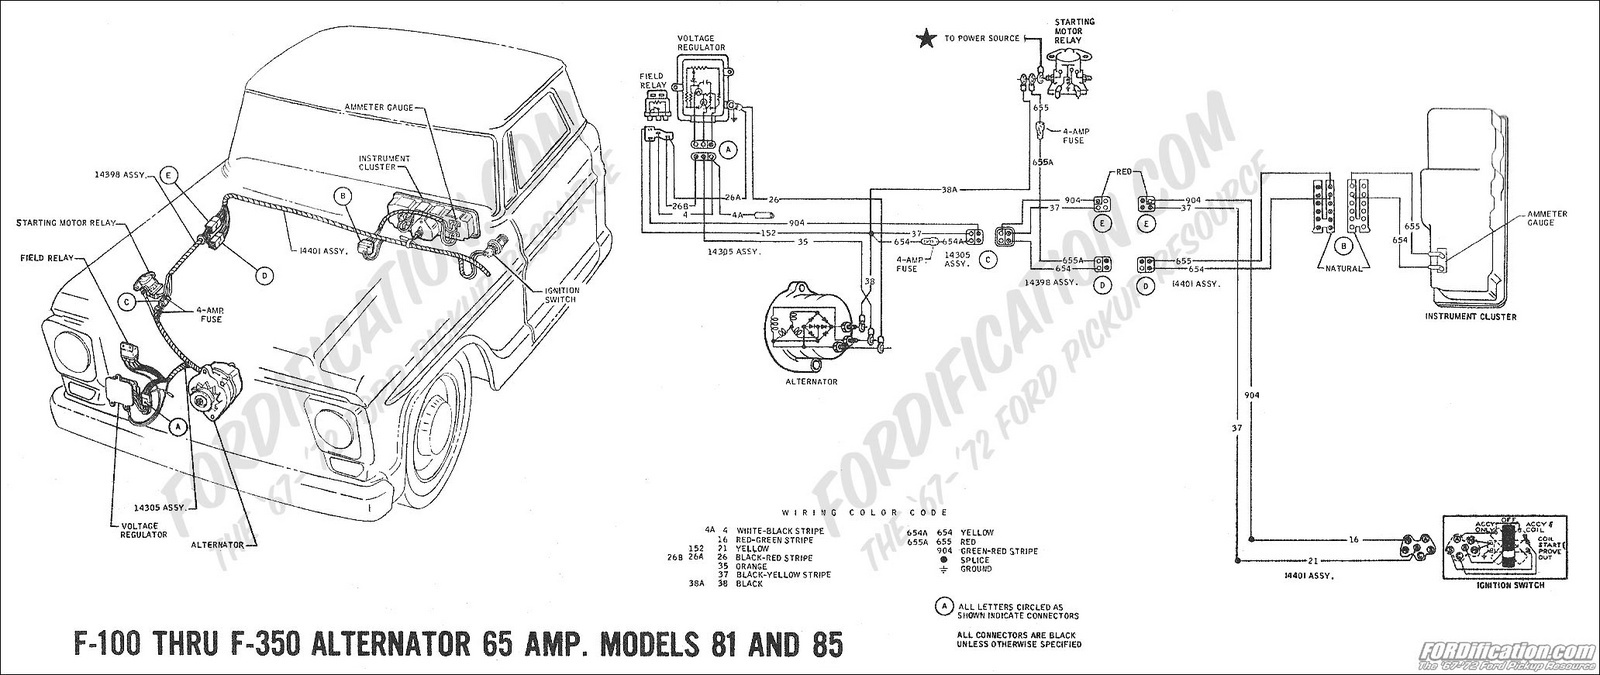 1983 Ford F100 Wiring Diagram Anything Diagrams F 150 100 Questions I Have A 73 No Power To The S Rh Cargurus Com F150 Ignition Switch